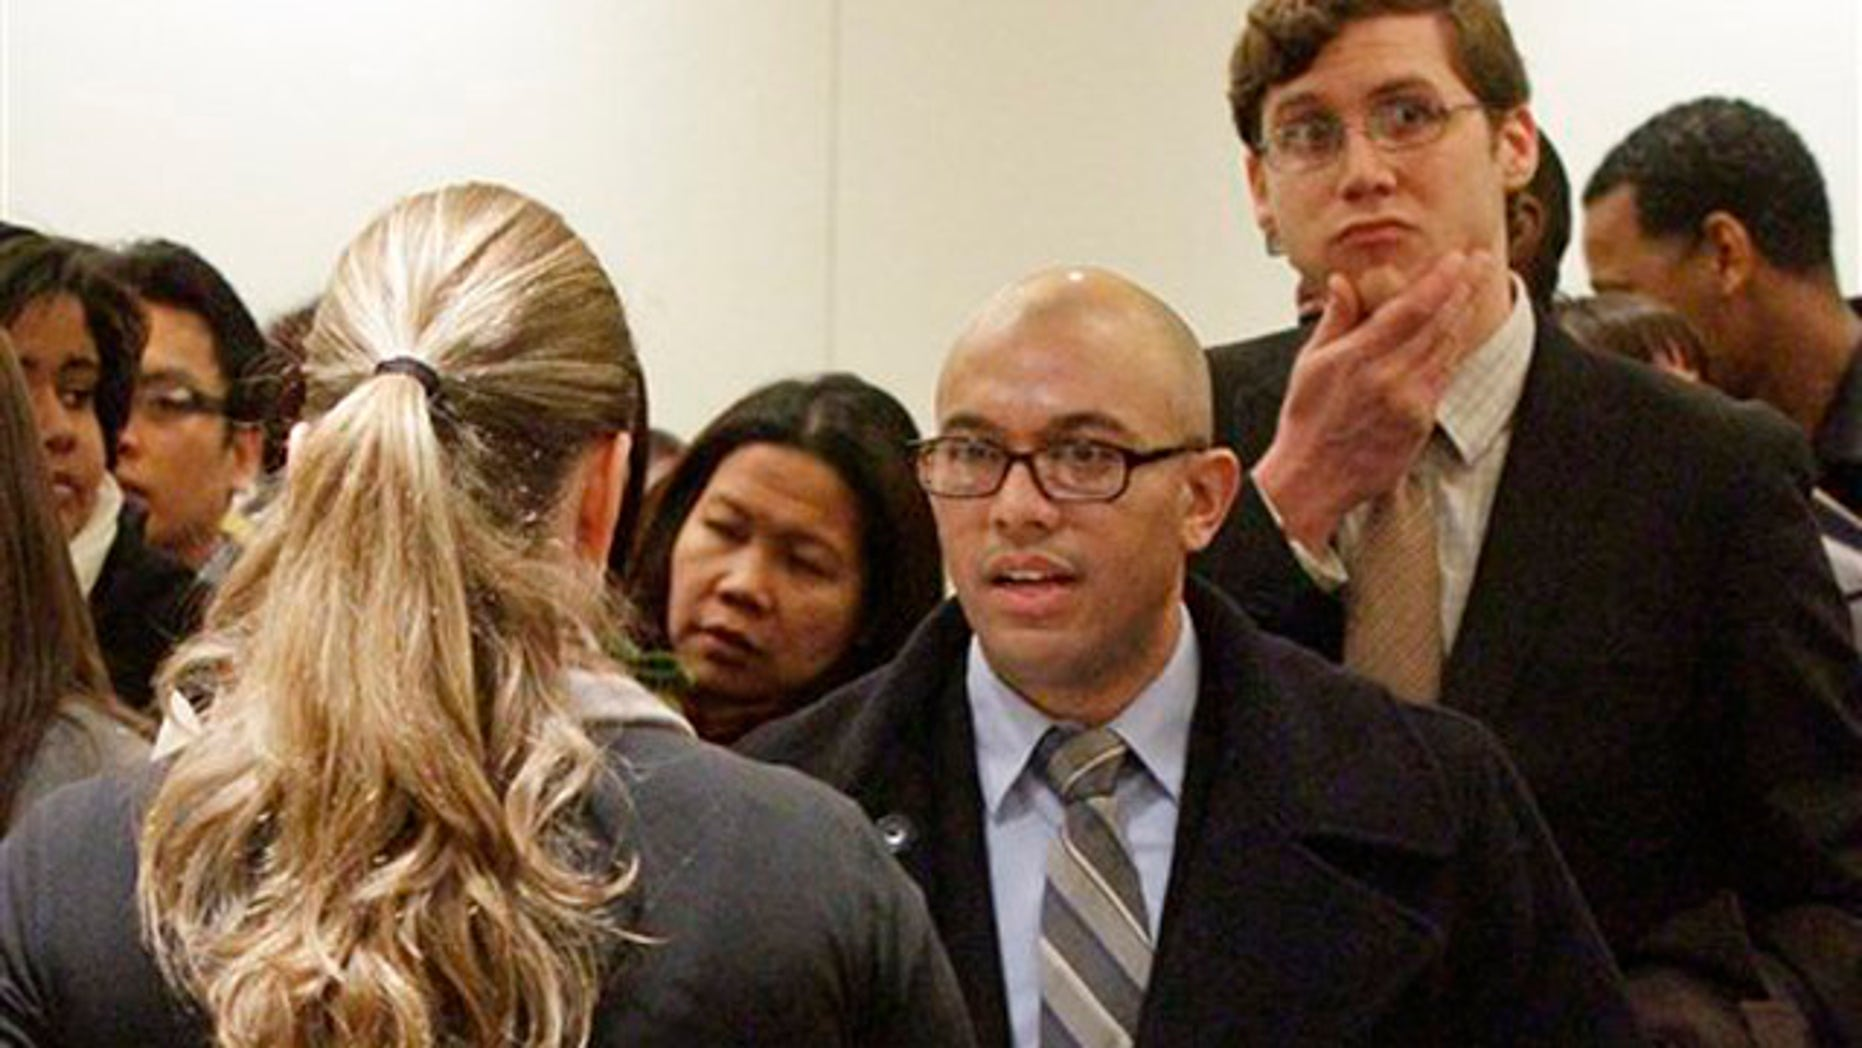 Jan. 25, 2012: Job seekers attend a job fair held by JobEXPO in New York.